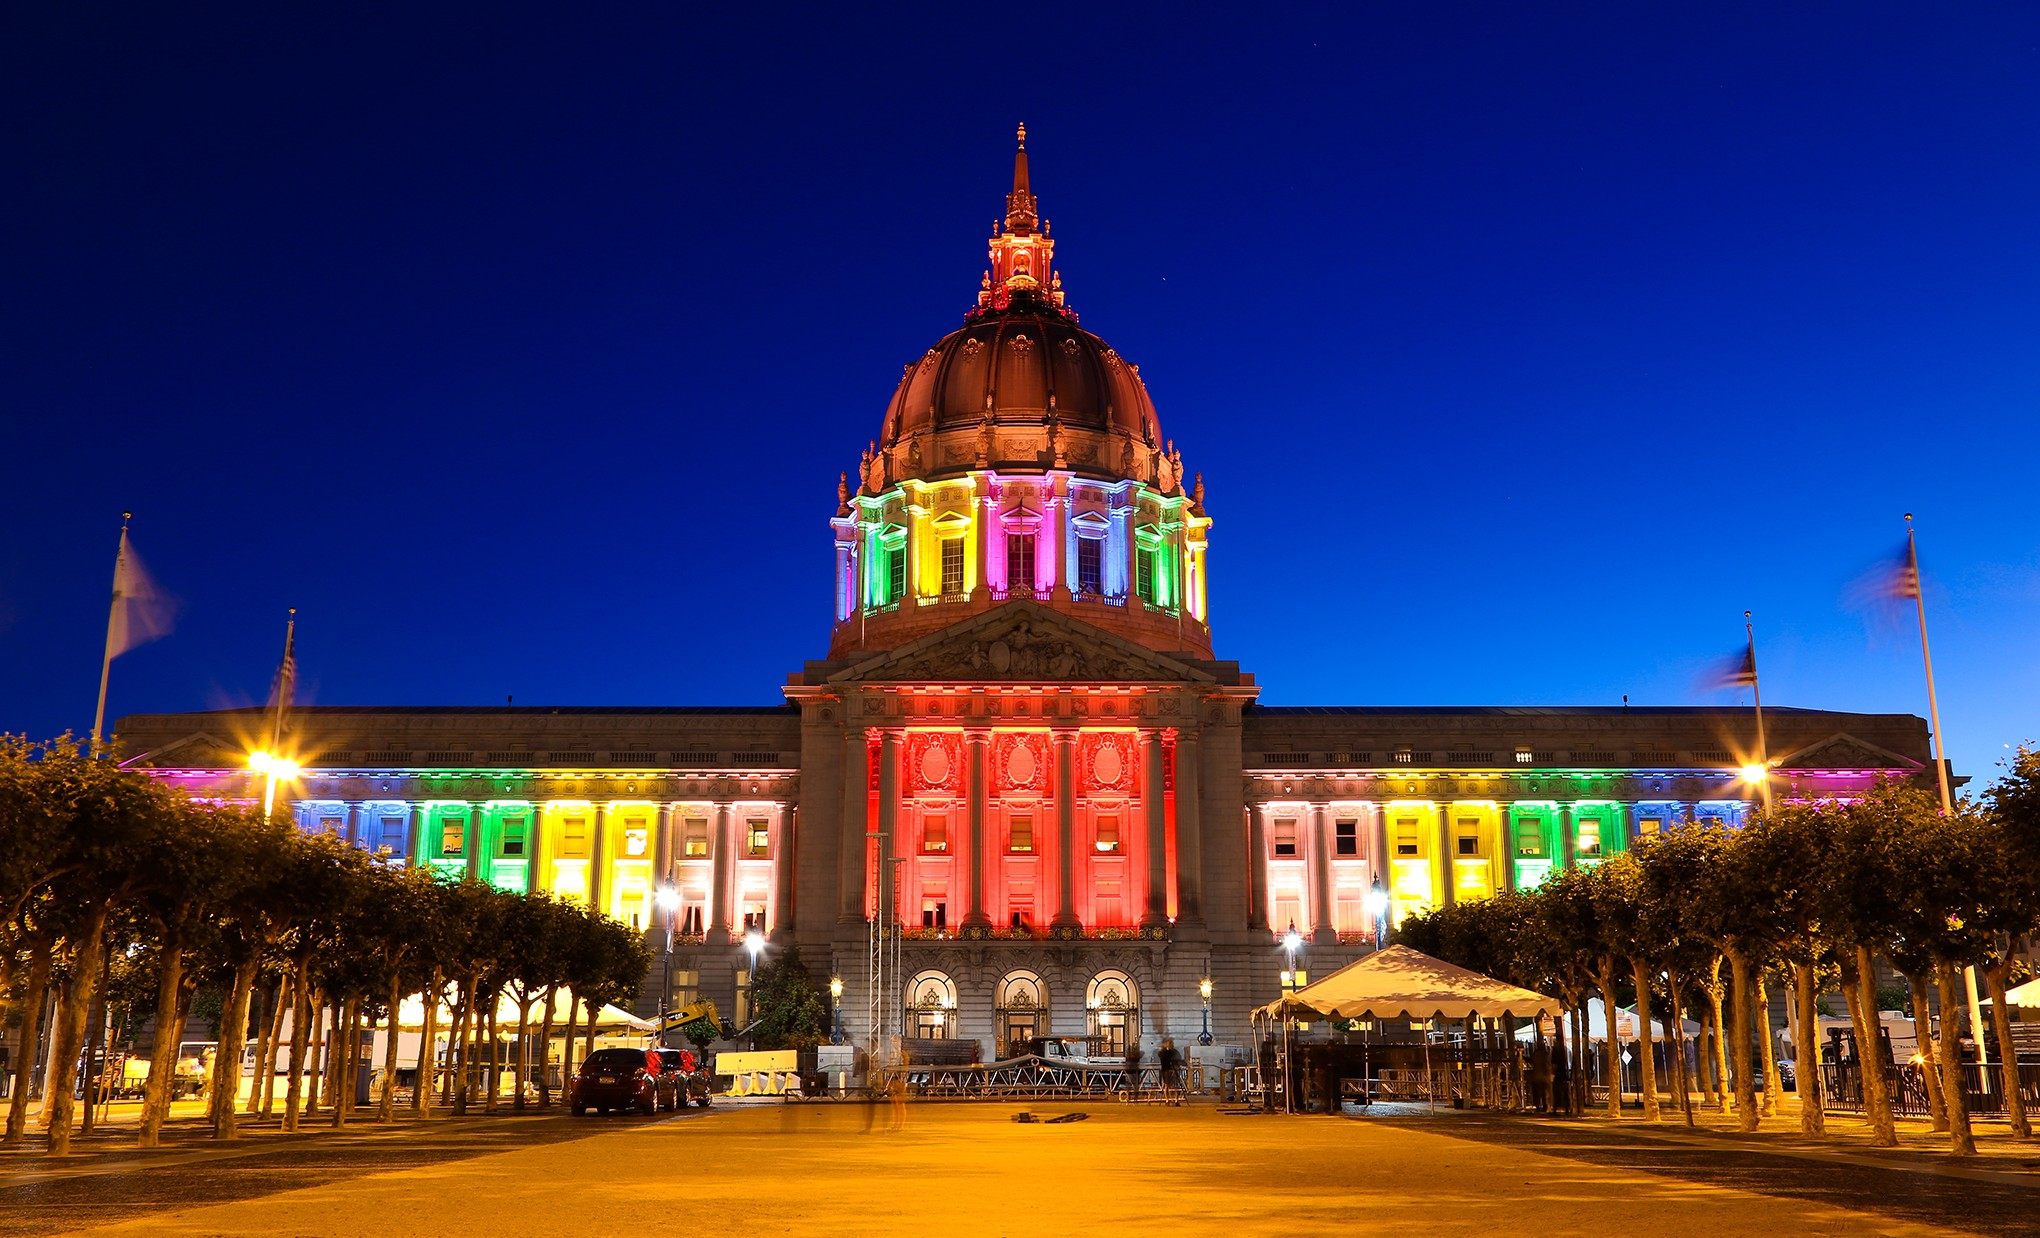 Long time san francisco supreme court gay marriage